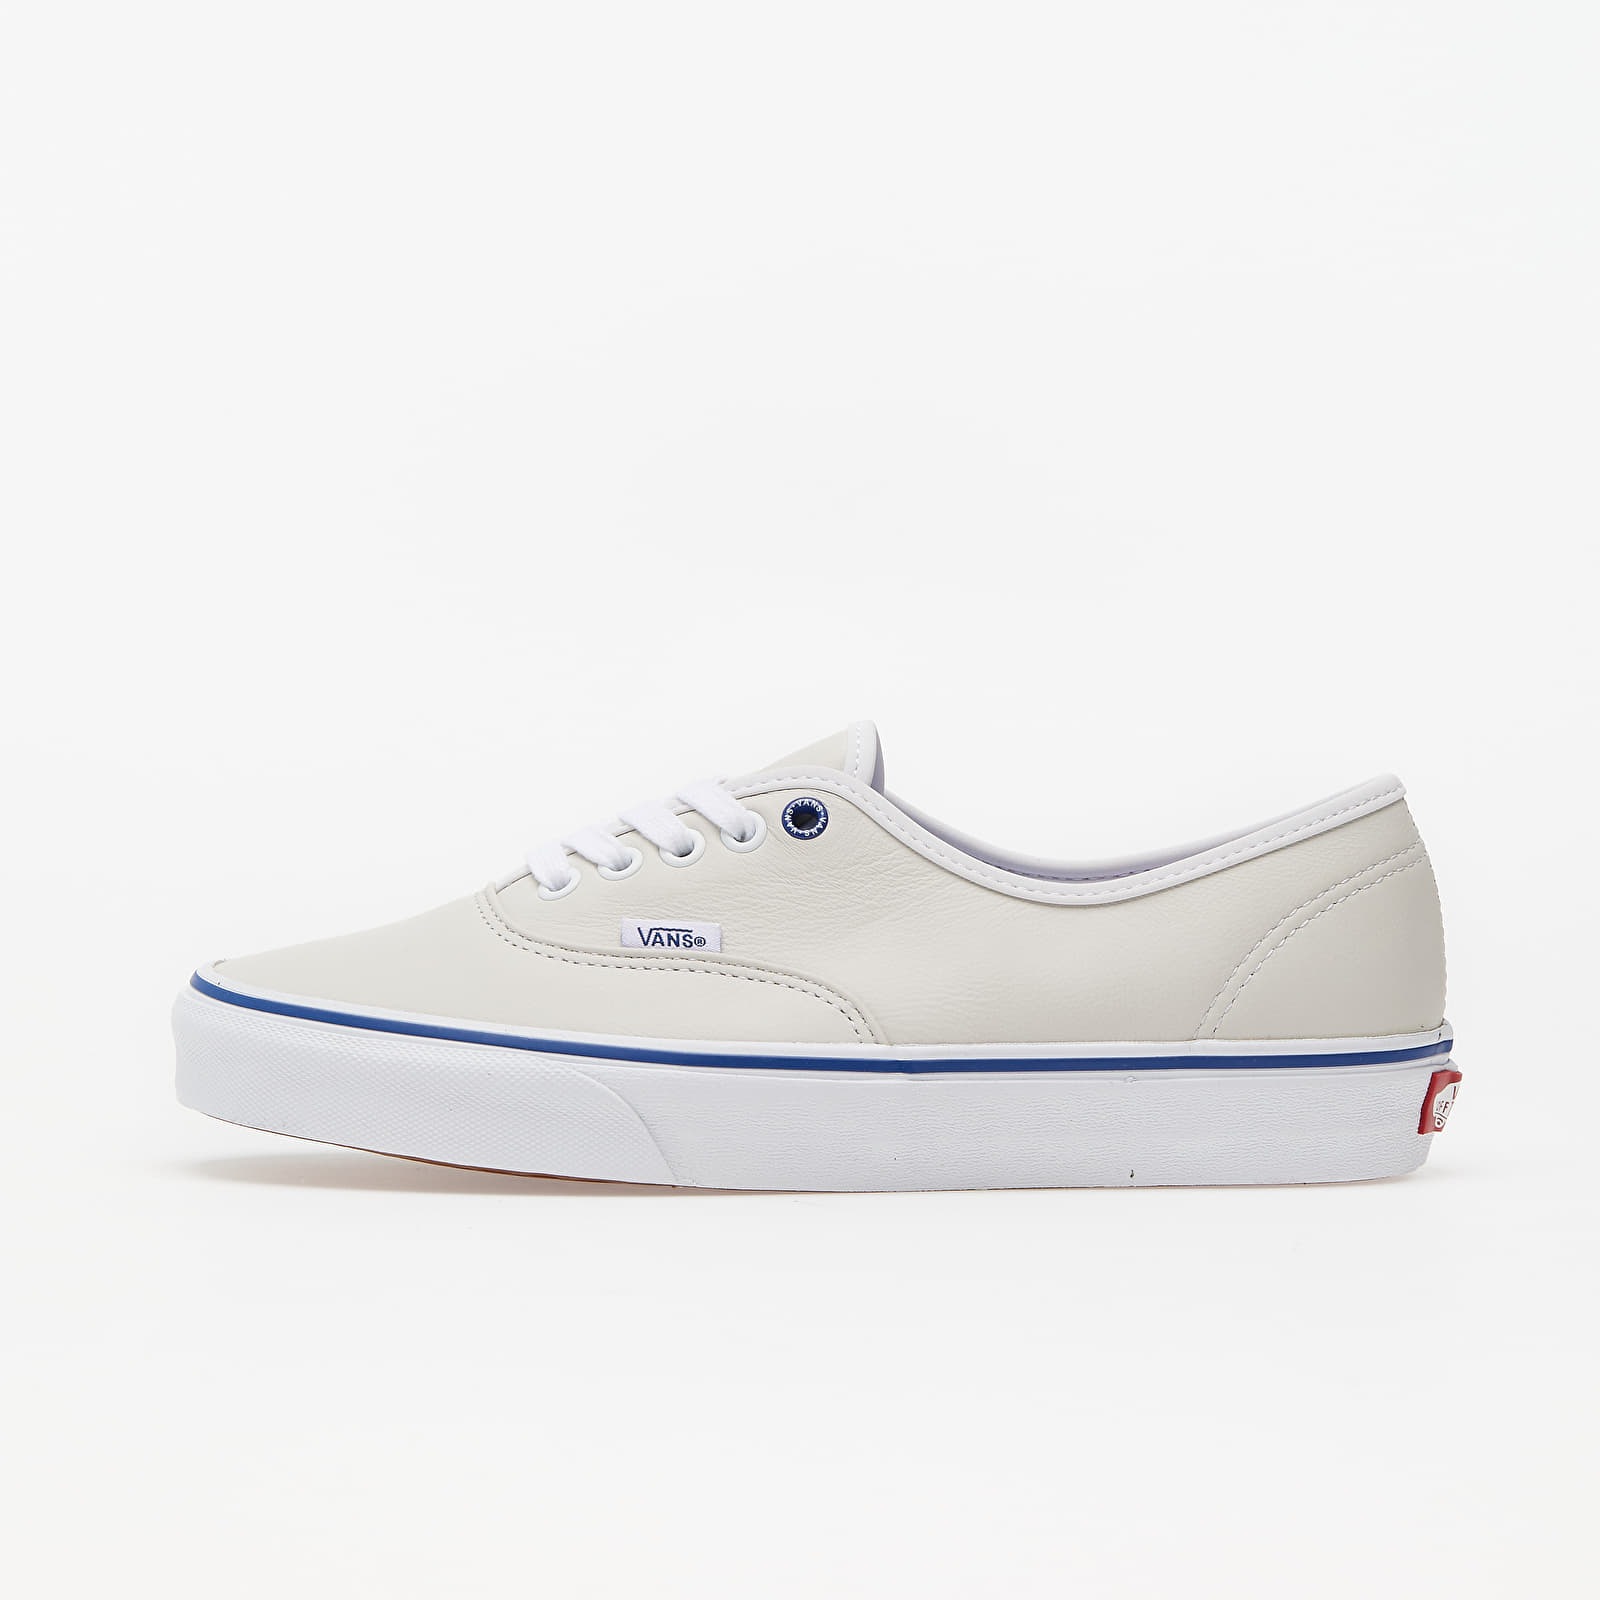 Vans Authentic (Butter Leather) True White EUR 36.5